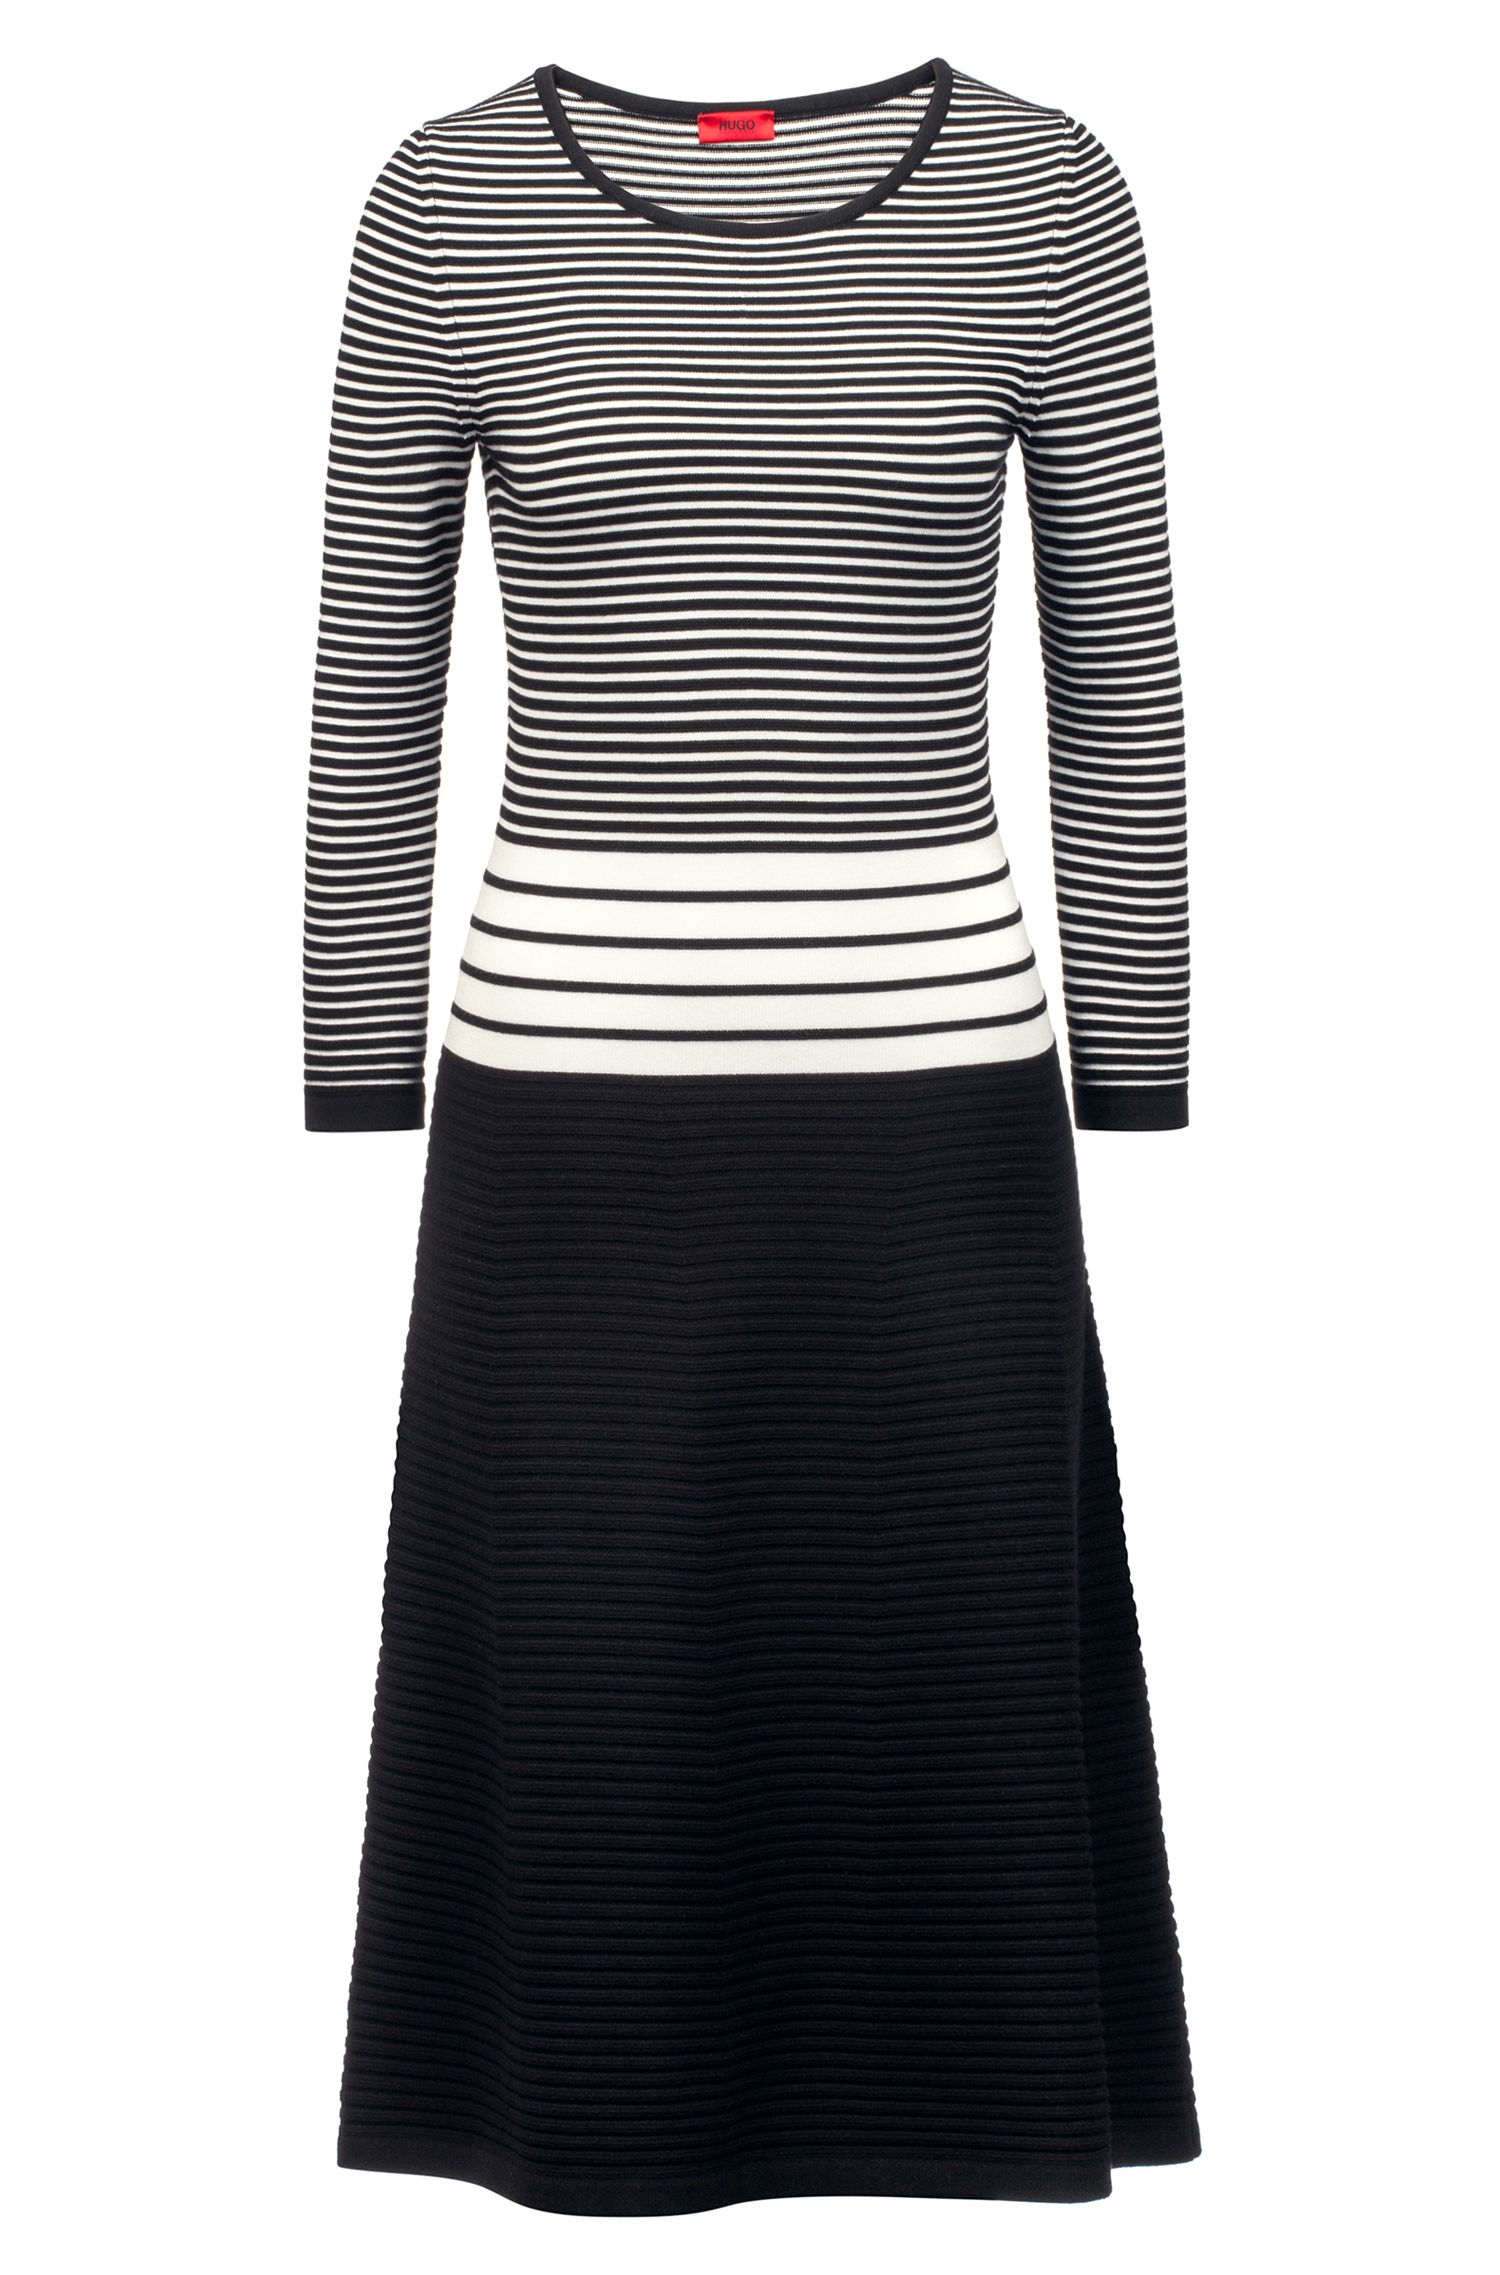 Striped dress in mixed knitted structures, Patterned